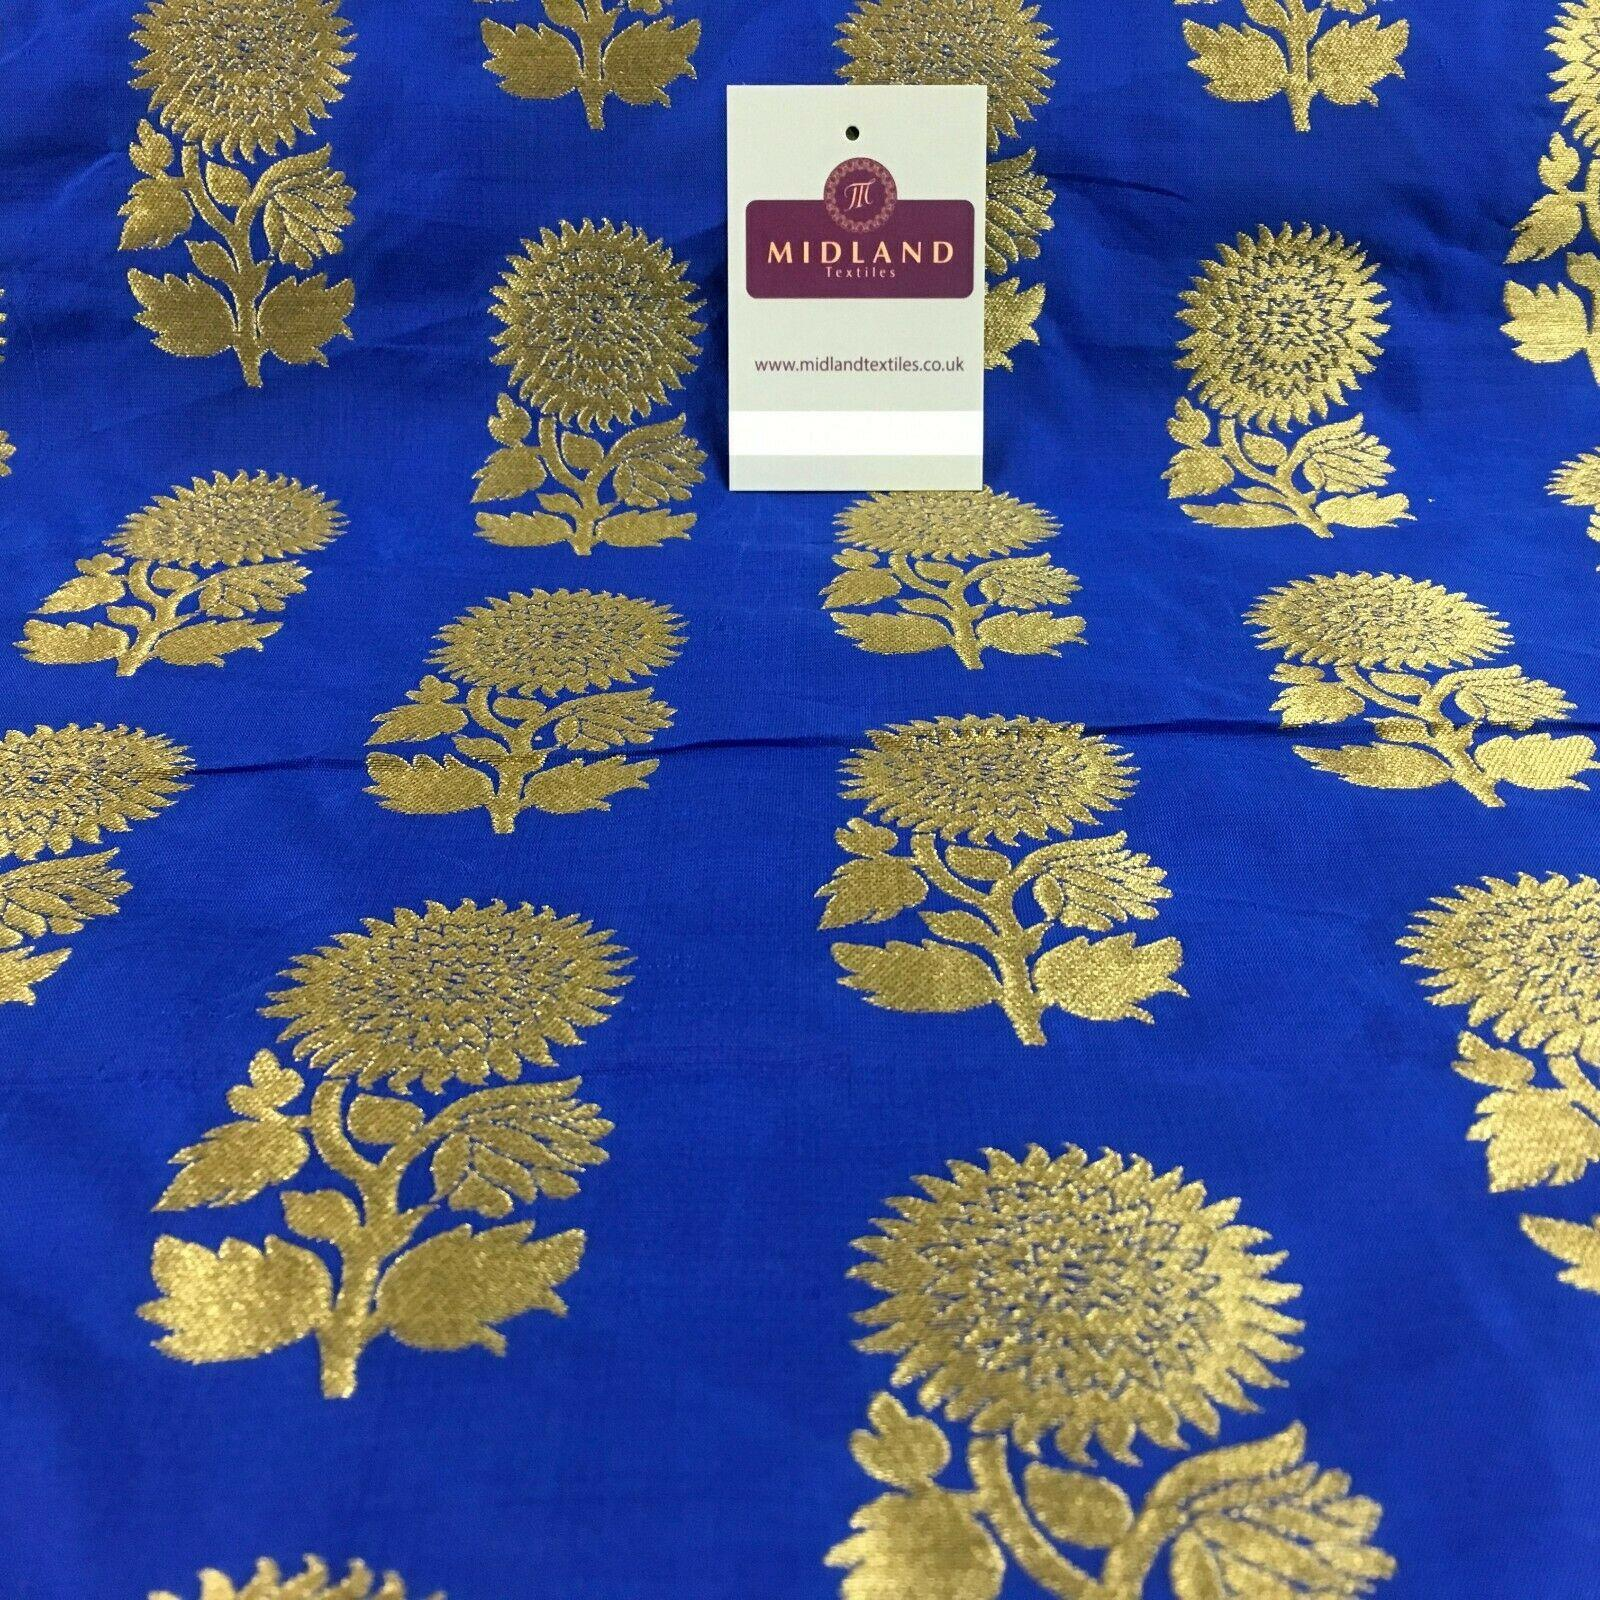 Indian Gold Flower Banarsi Brocade waistcoat fabric 110 cm Wide MN1100 Mtex